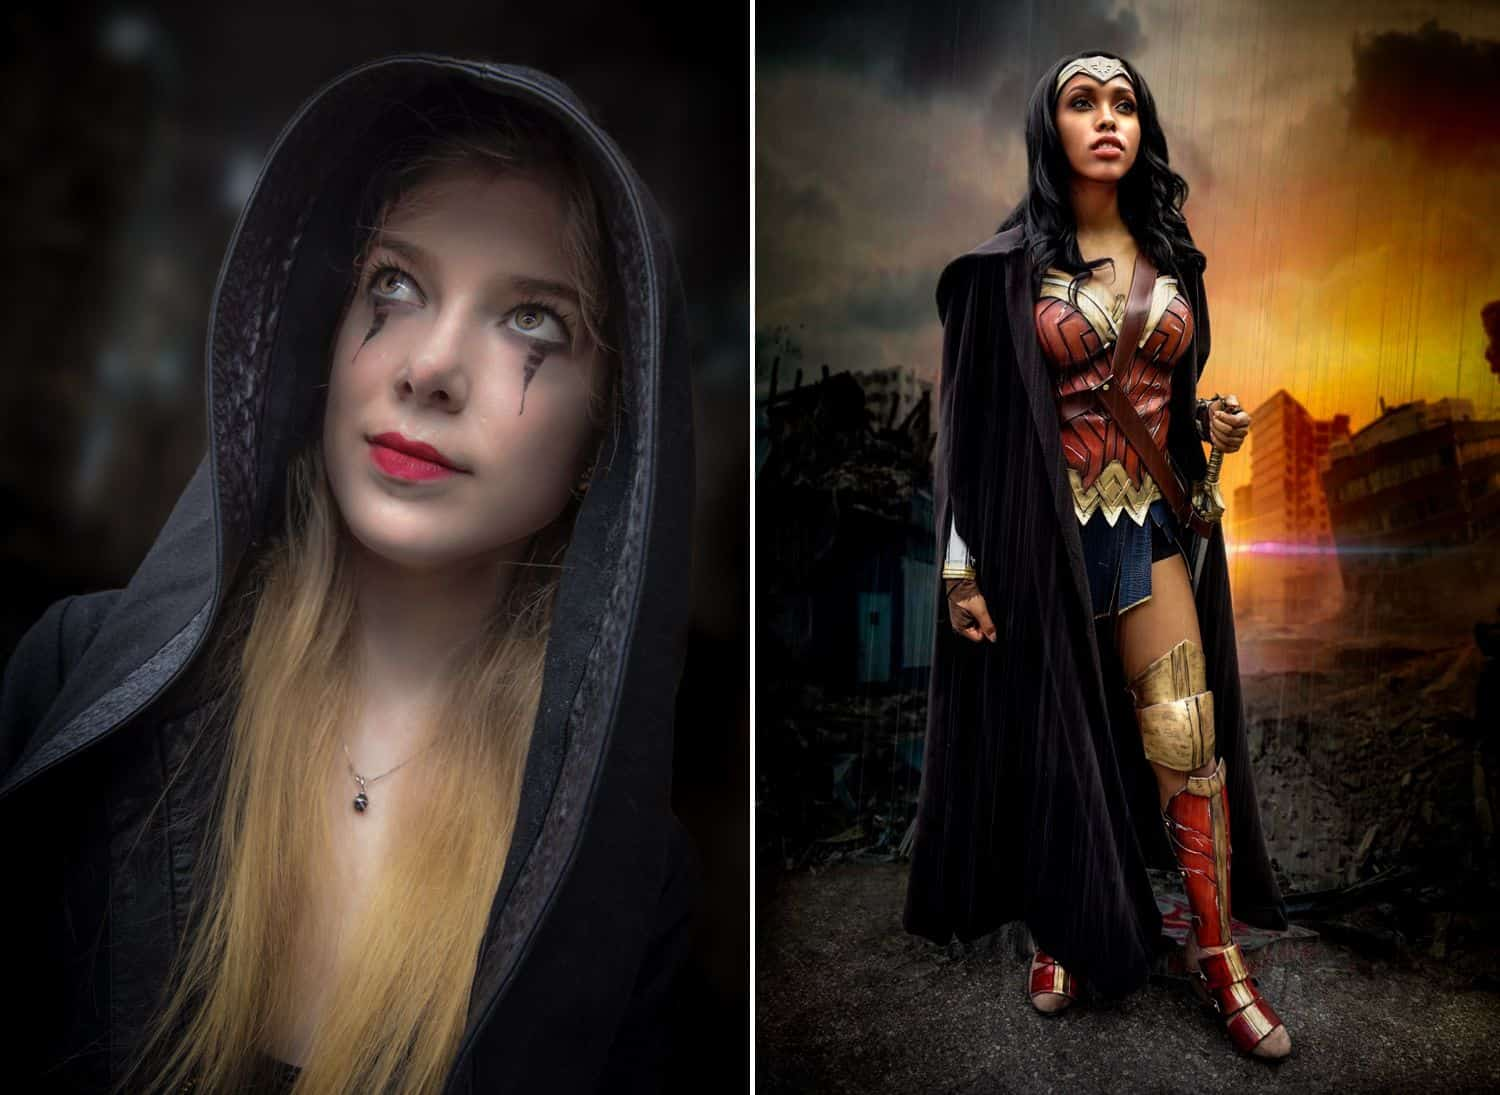 41 Fascinating Photos That Will Inspire More Powerful Portraits: Cosplay Photography by Joe Alfano